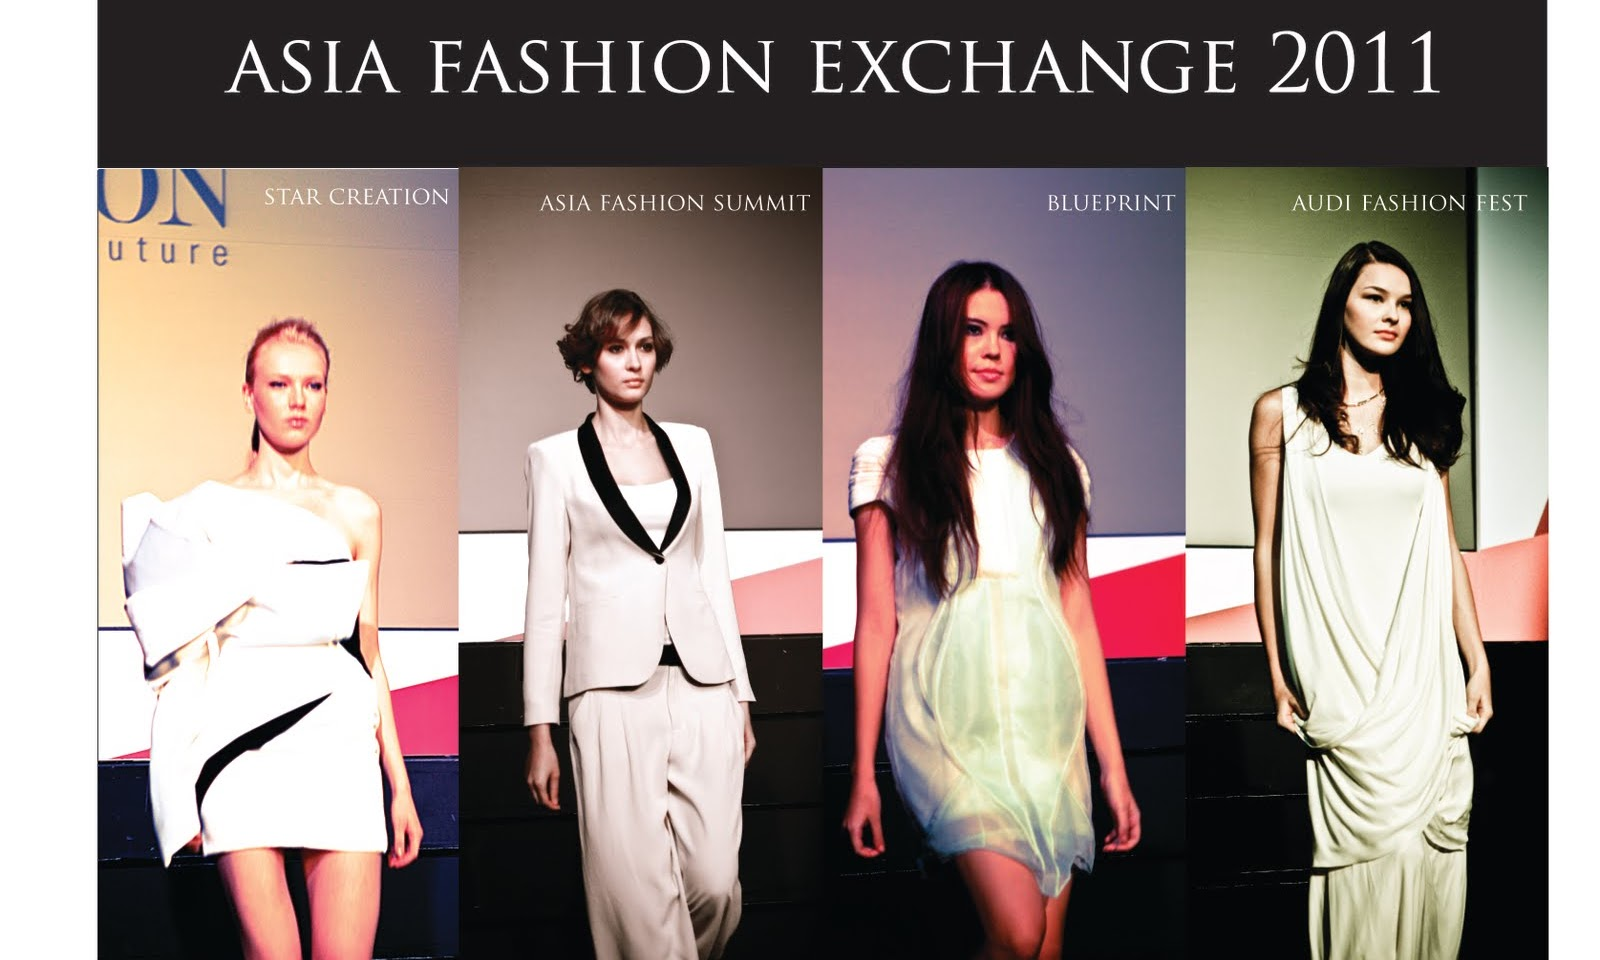 asia fashion exchange 2011 update